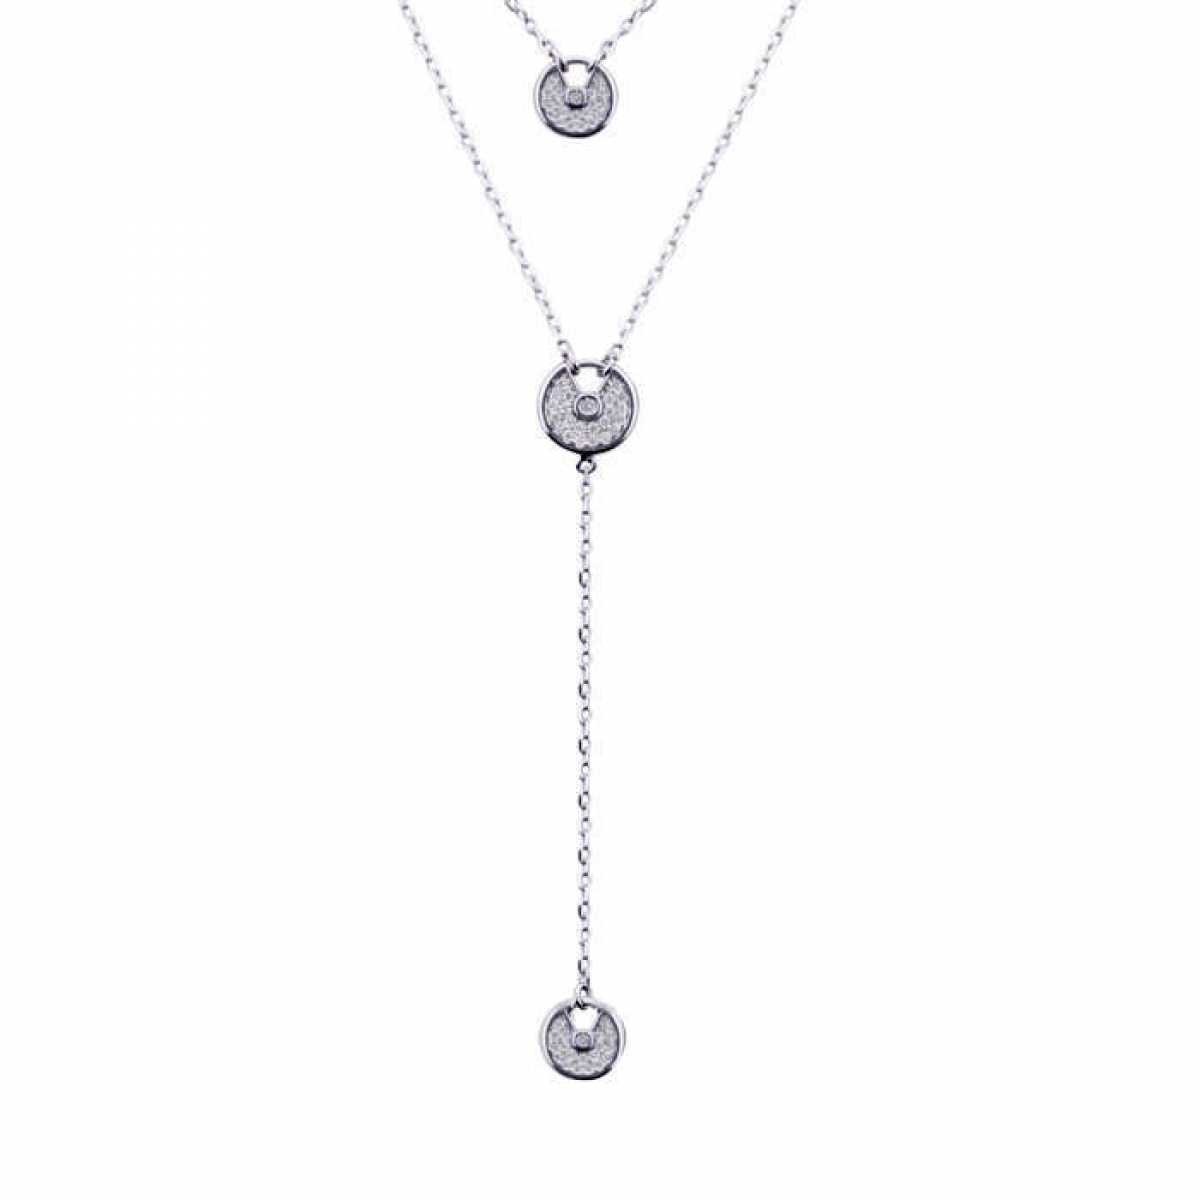 Hanging Silver Circle In Chain